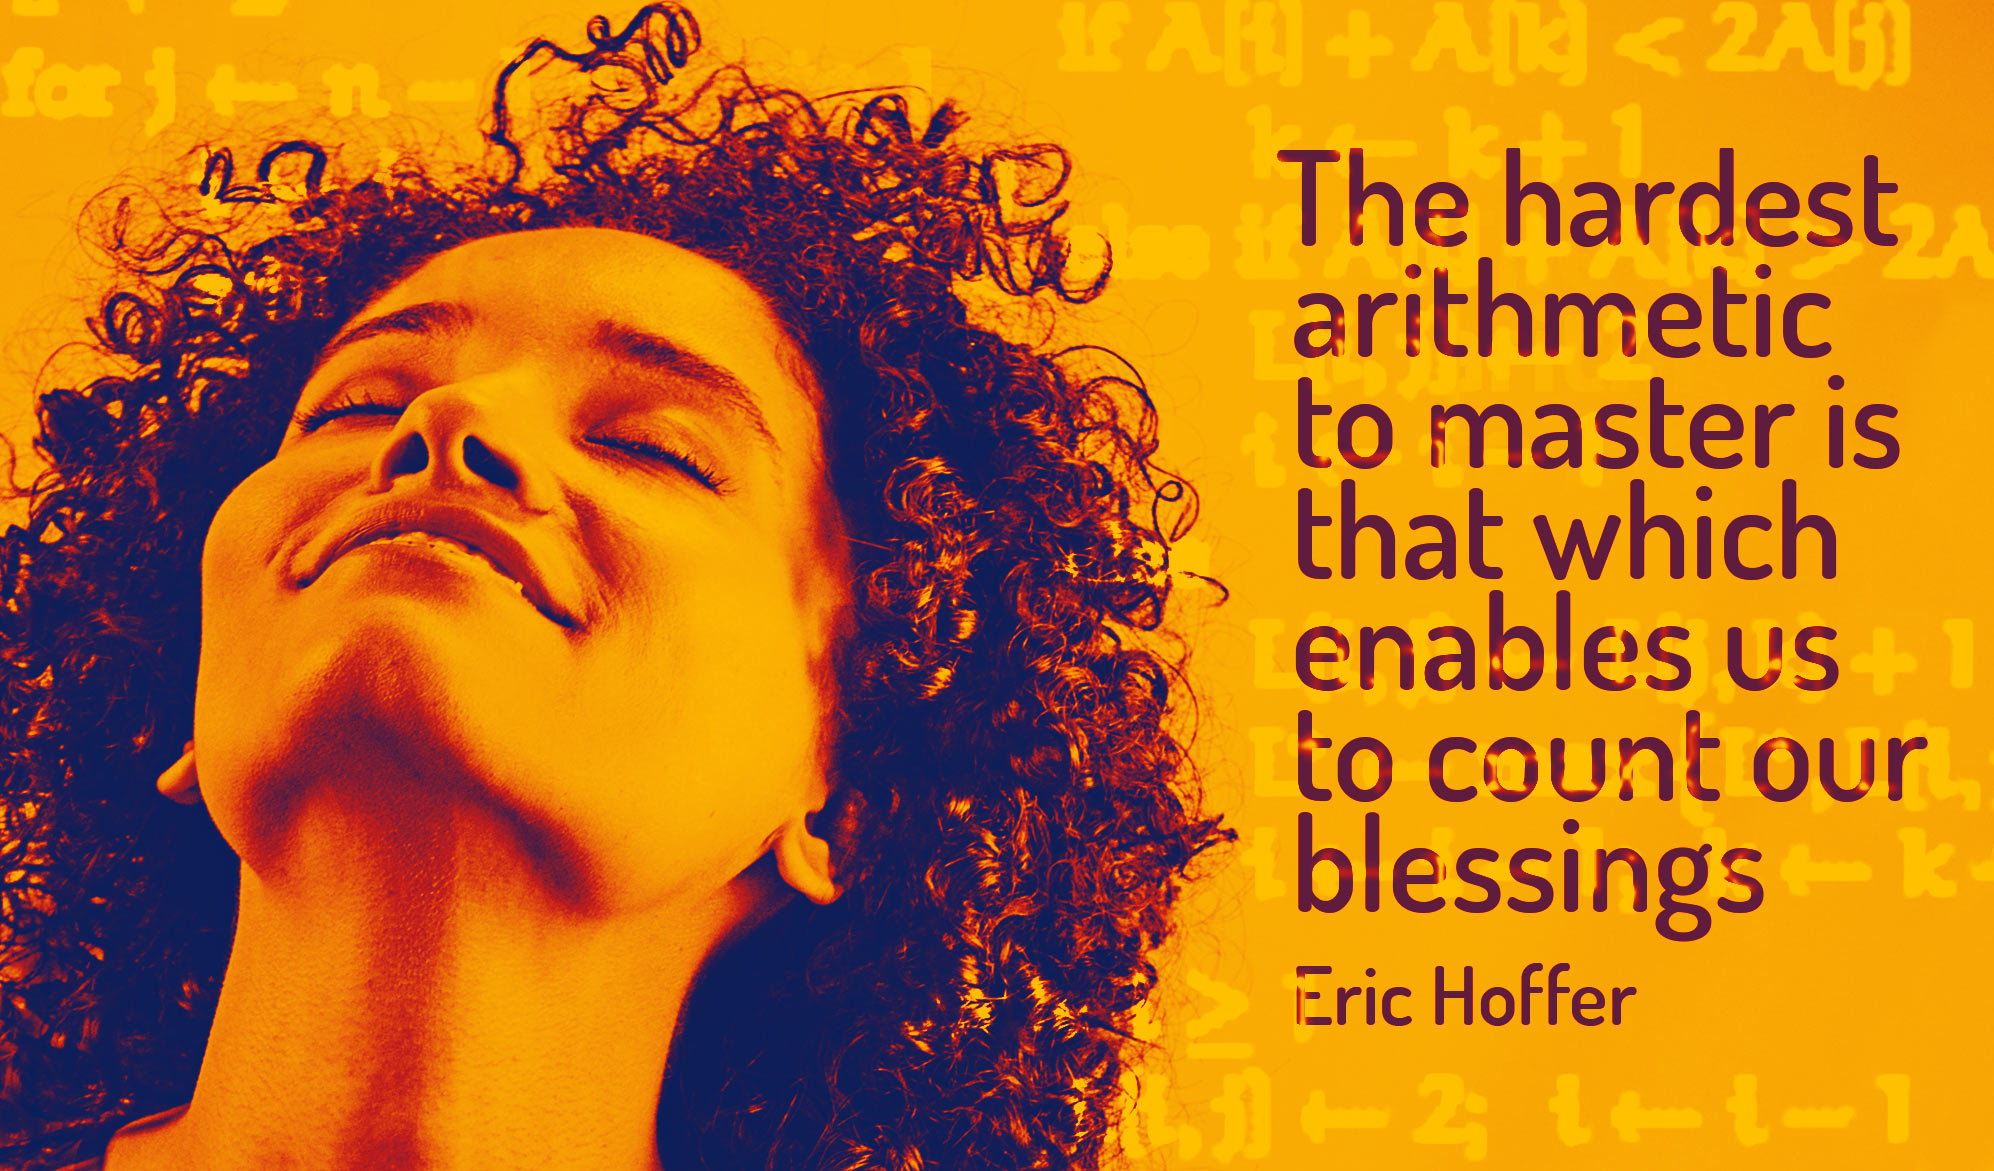 daily inspirational quote image: happy woman lifting her chin up with eyes closed, bathed in yellow and purple light